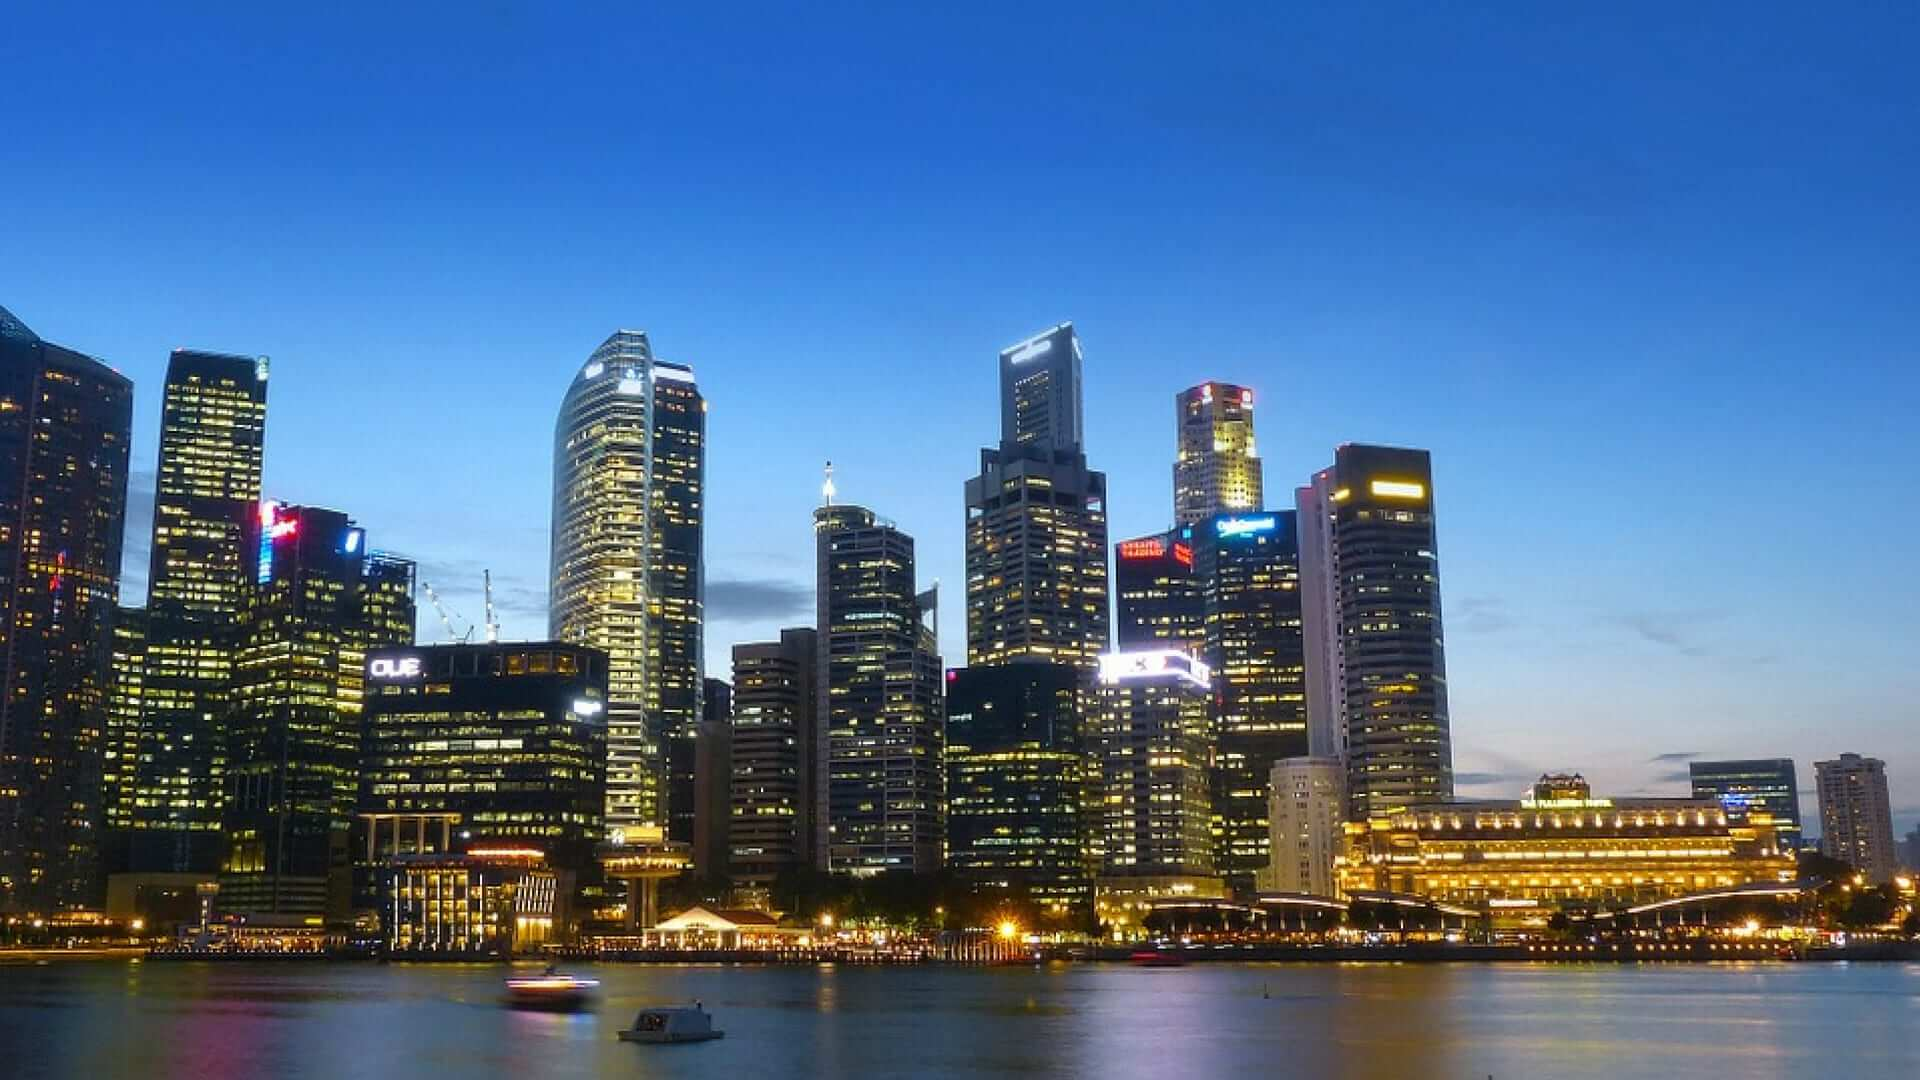 Illuminated tall buildings on the waterfront during the evening in Singapore.